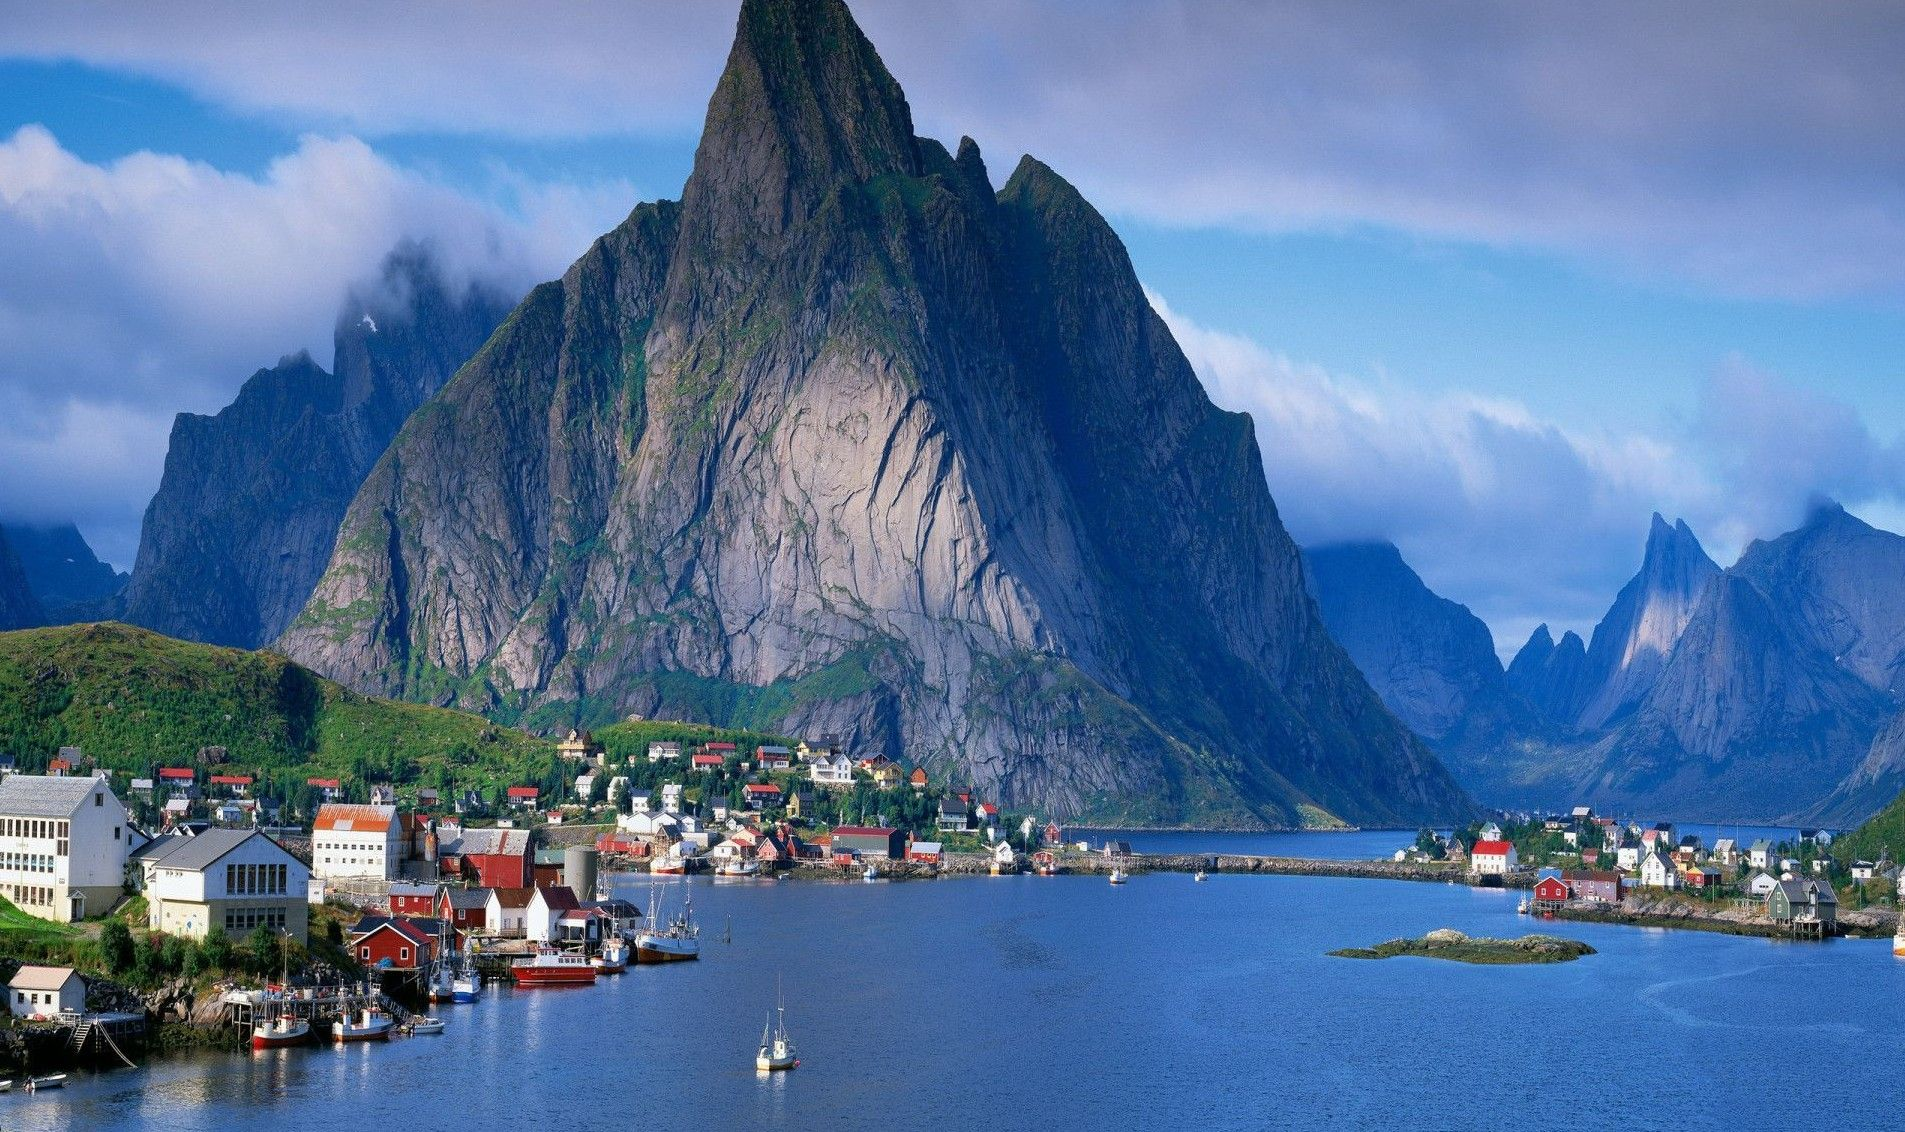 11229-village-in-sognefjord-norway-1920x1200-world-wallpaper